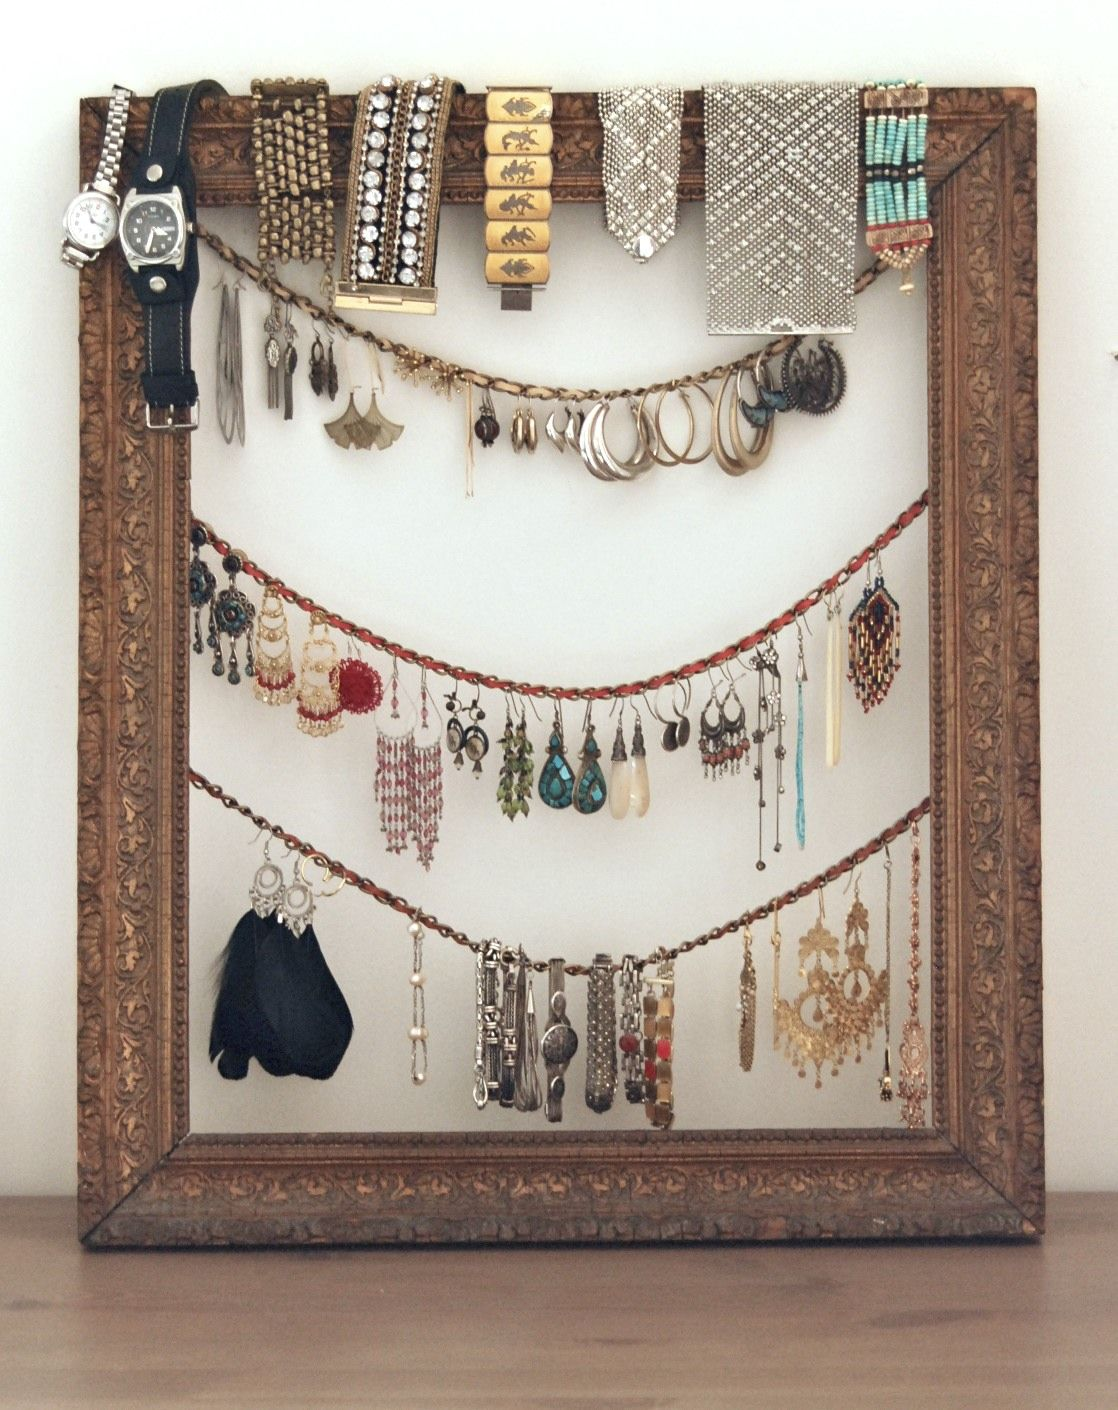 Ive had a jewelry storage issue for a long time now Ive tried